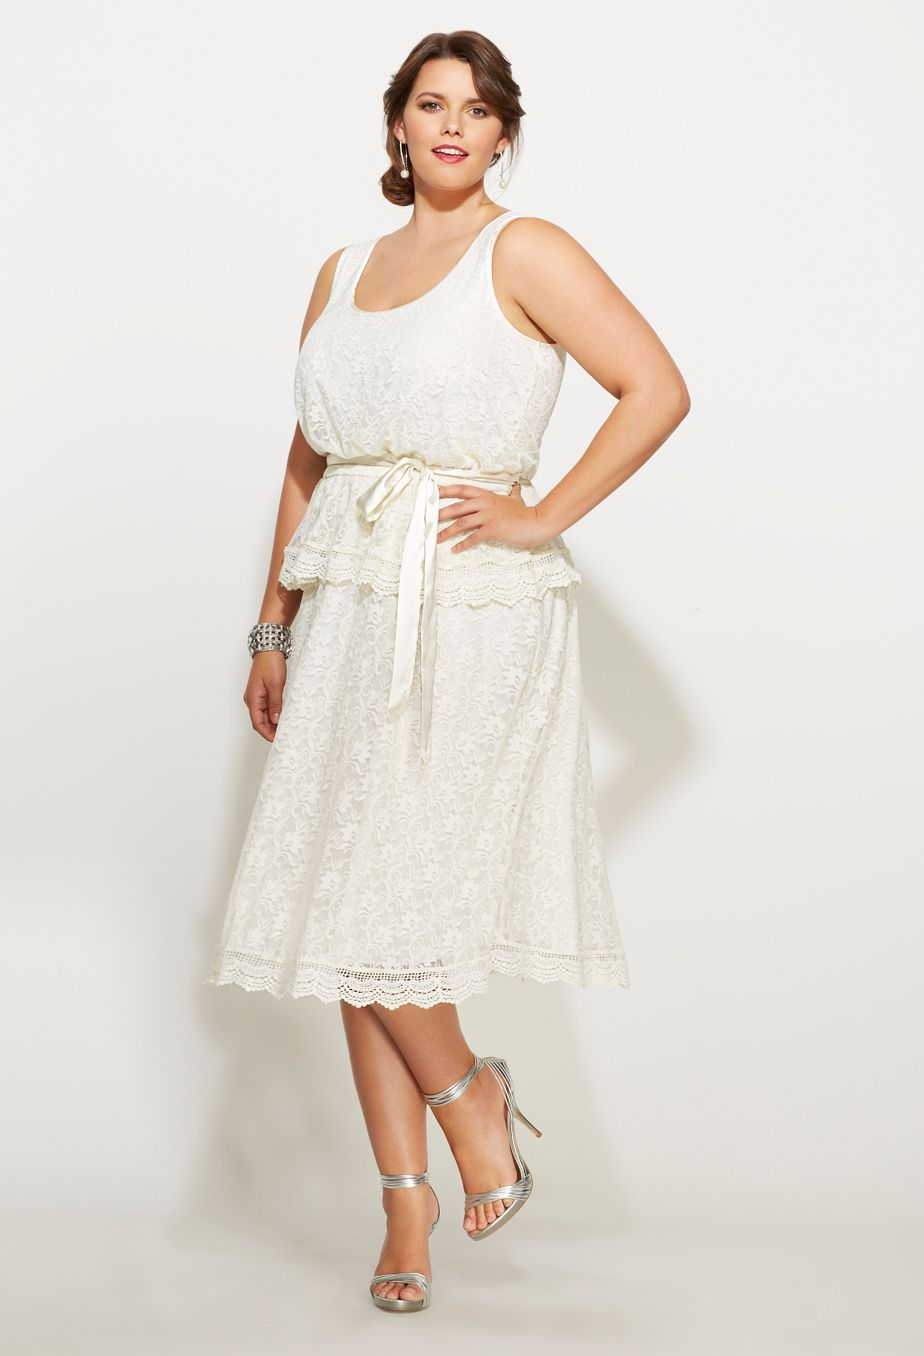 Cute Plus Size Bridal Shower Dresses